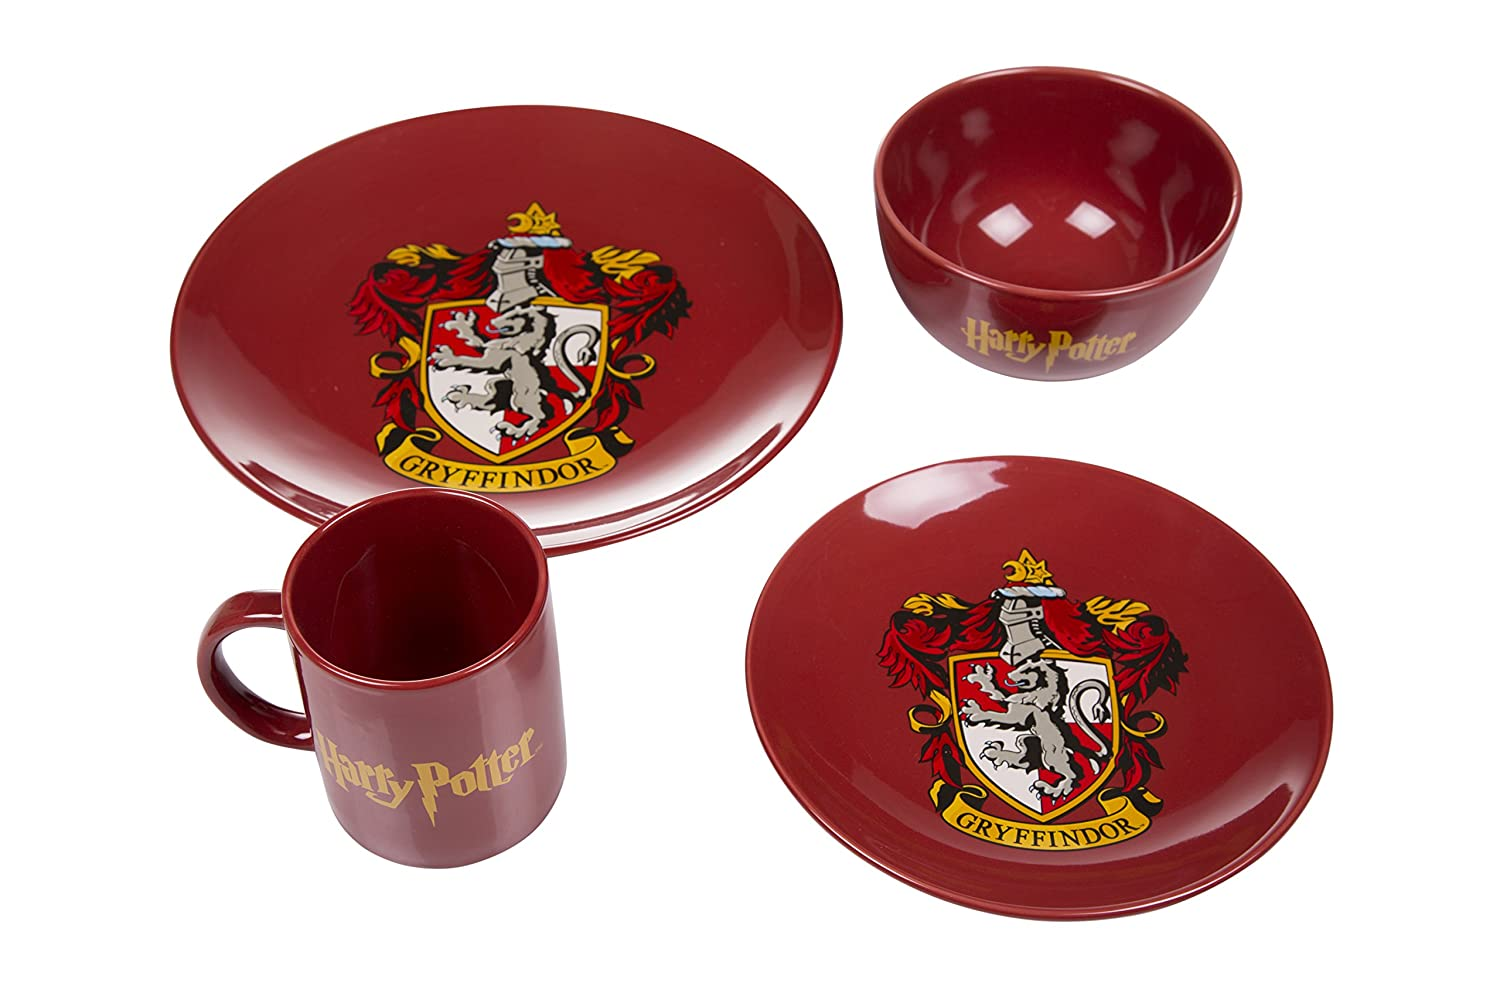 Harry Potter Platform 9 and 3 4 4 Piece Dinner Set GGS